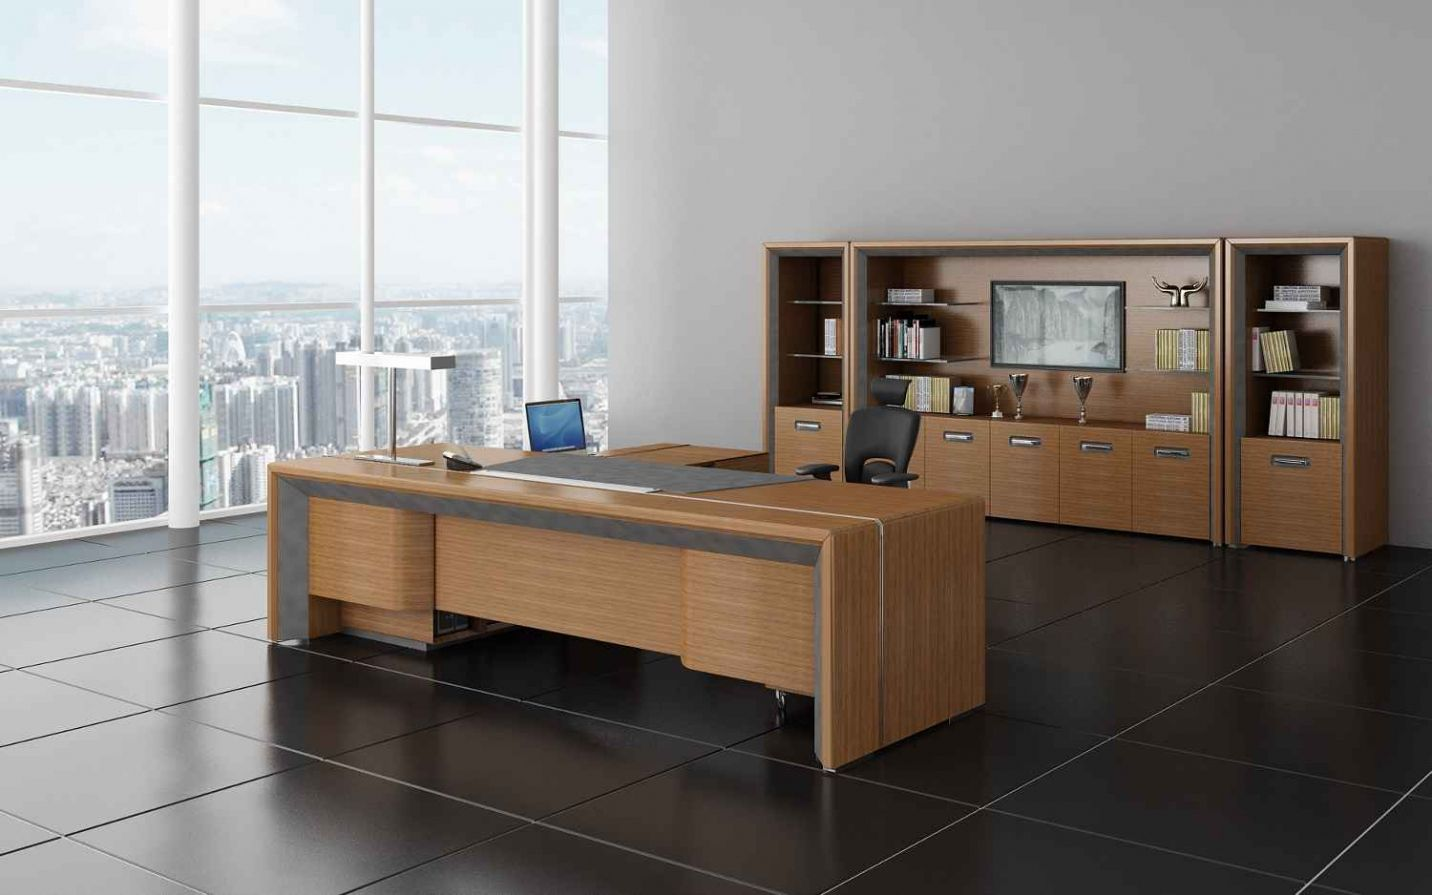 ikea ergonomic office chair. Ikea Executive Desk - Office Furniture For Home Check More At Http://michael Ergonomic Chair E